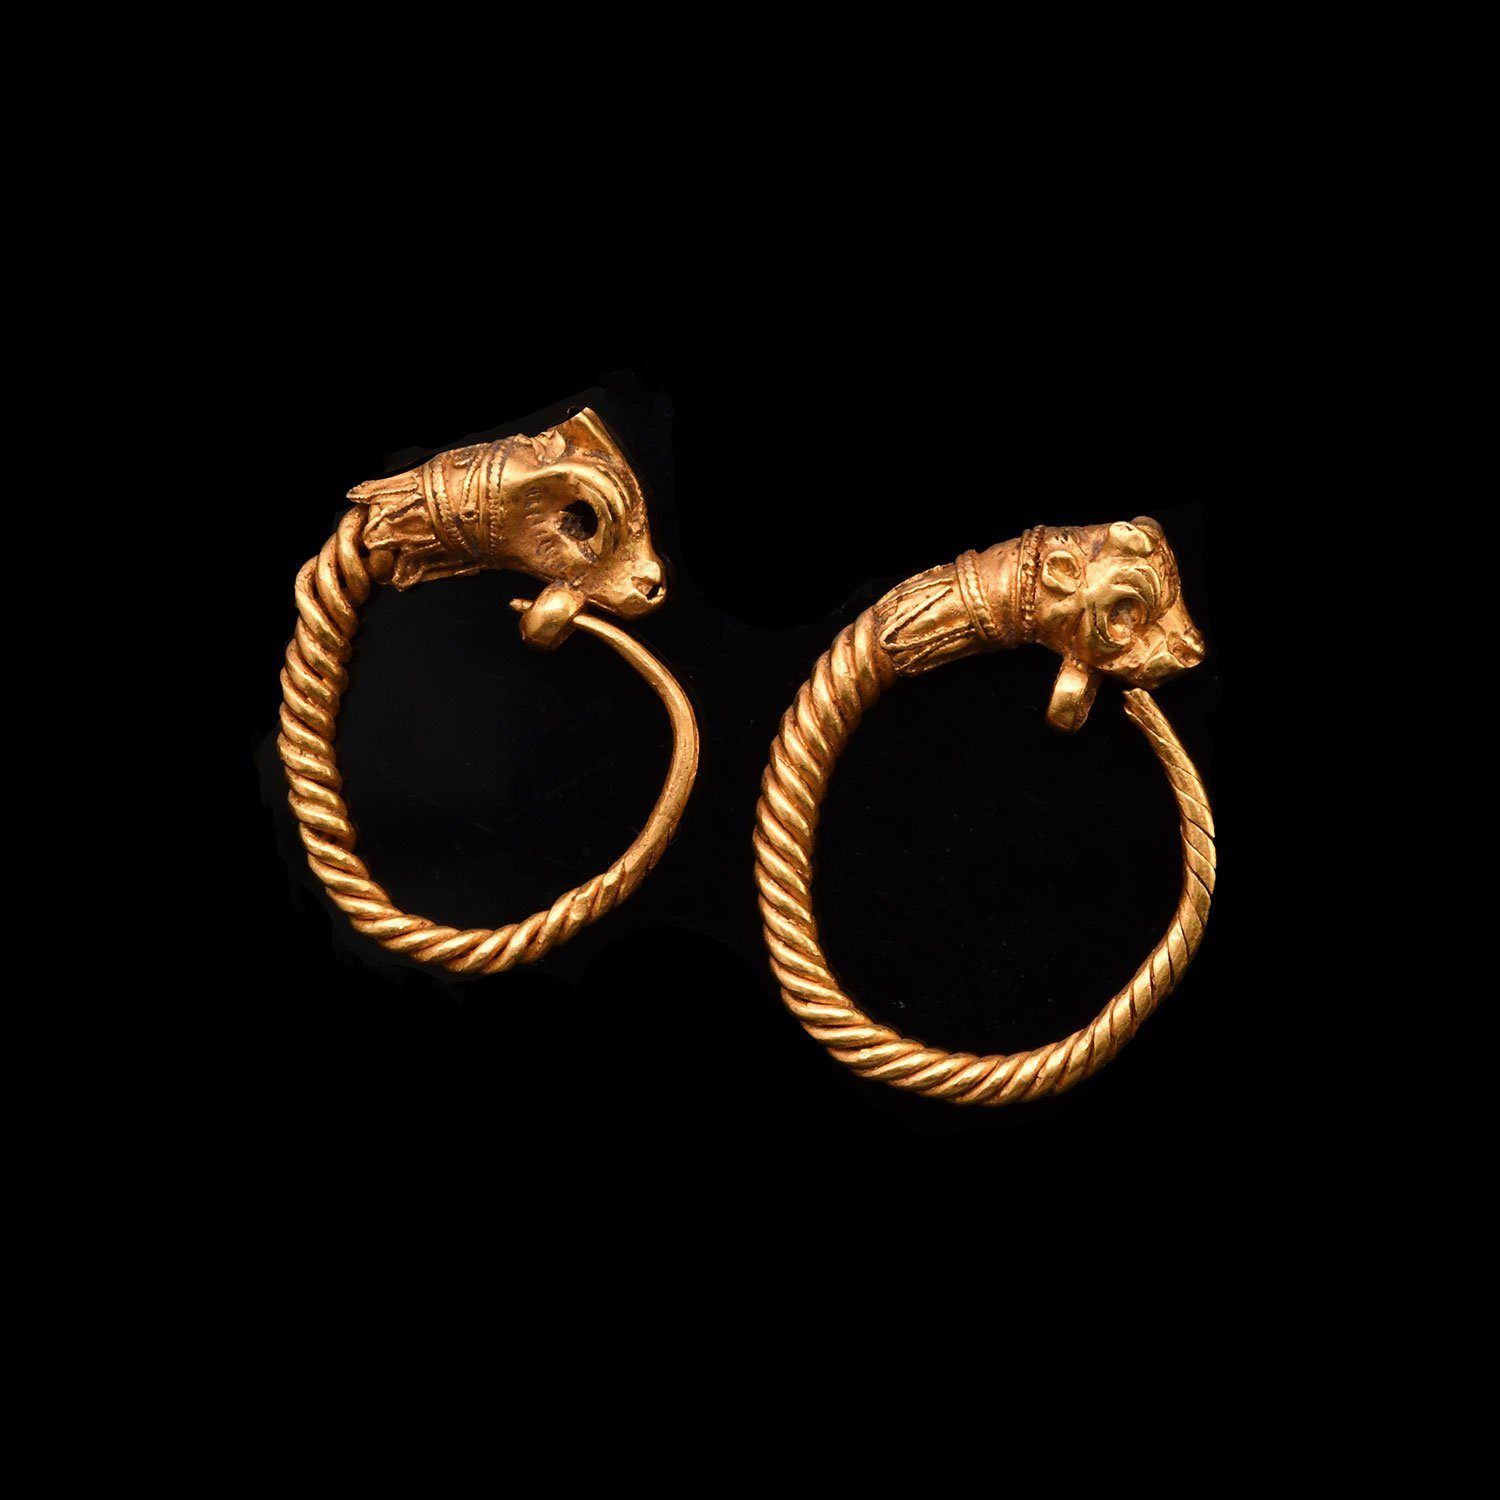 * A fine pair of Greek Antelope Earrings, Hellenistic Period, ca. 3rd - 1st century BCE